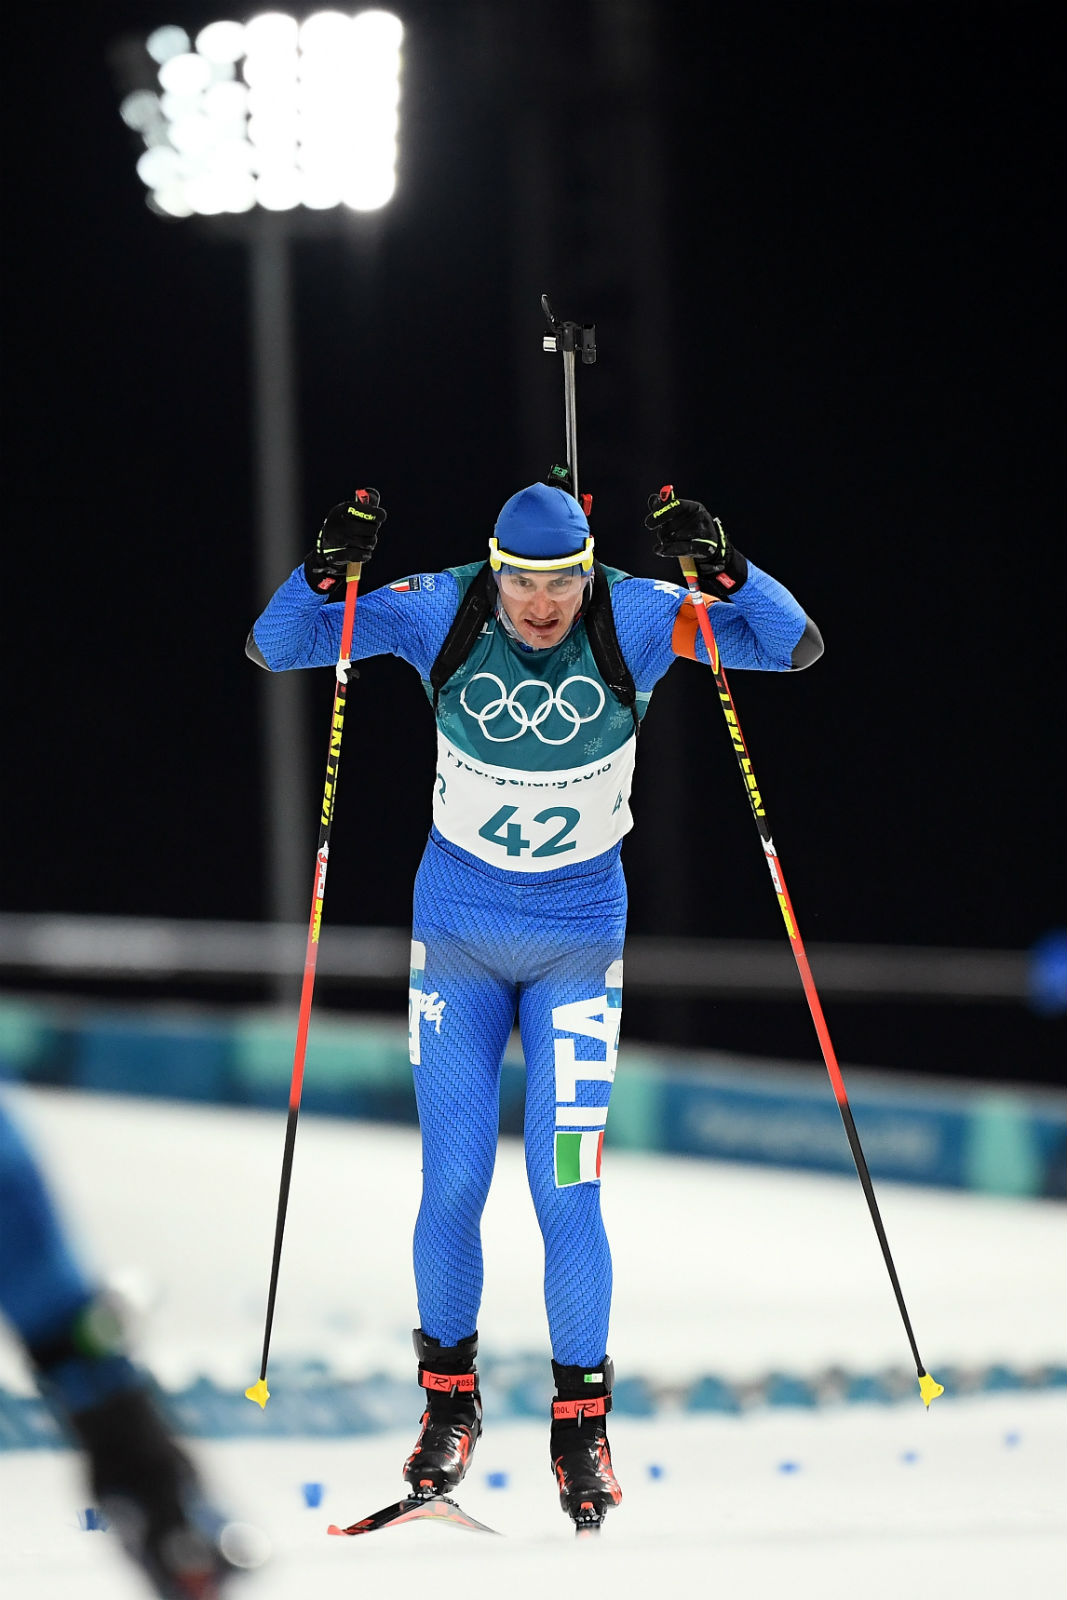 Biathlon - Men's 10km Sprint